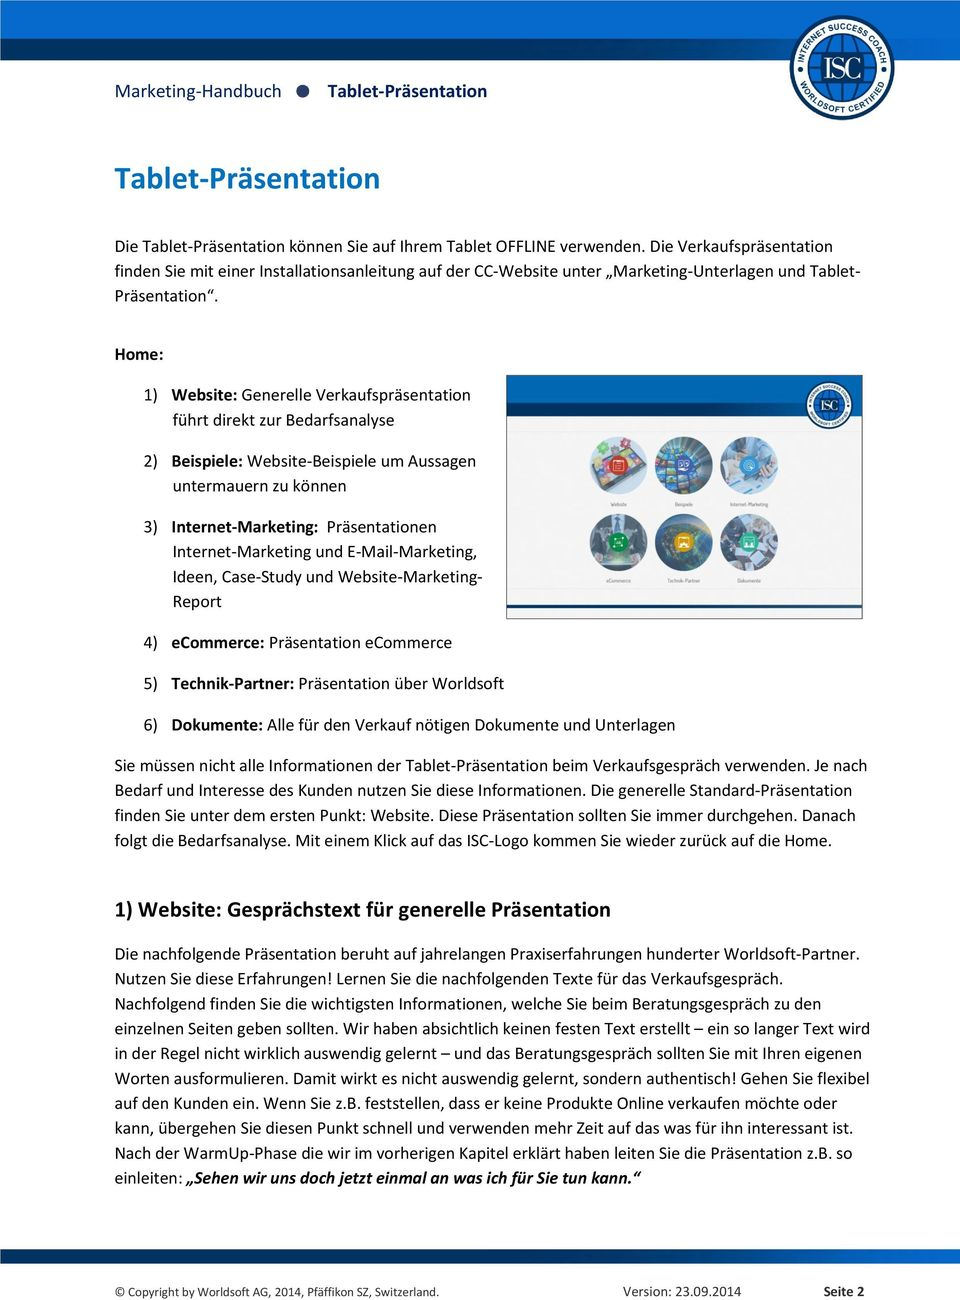 Internet-Marketing und E-Mail-Marketing, Ideen, Case-Study und Website-Marketing- Report 4) ecommerce: Präsentation ecommerce 5) Technik-Partner: Präsentation über Worldsoft 6) Dokumente: Alle für